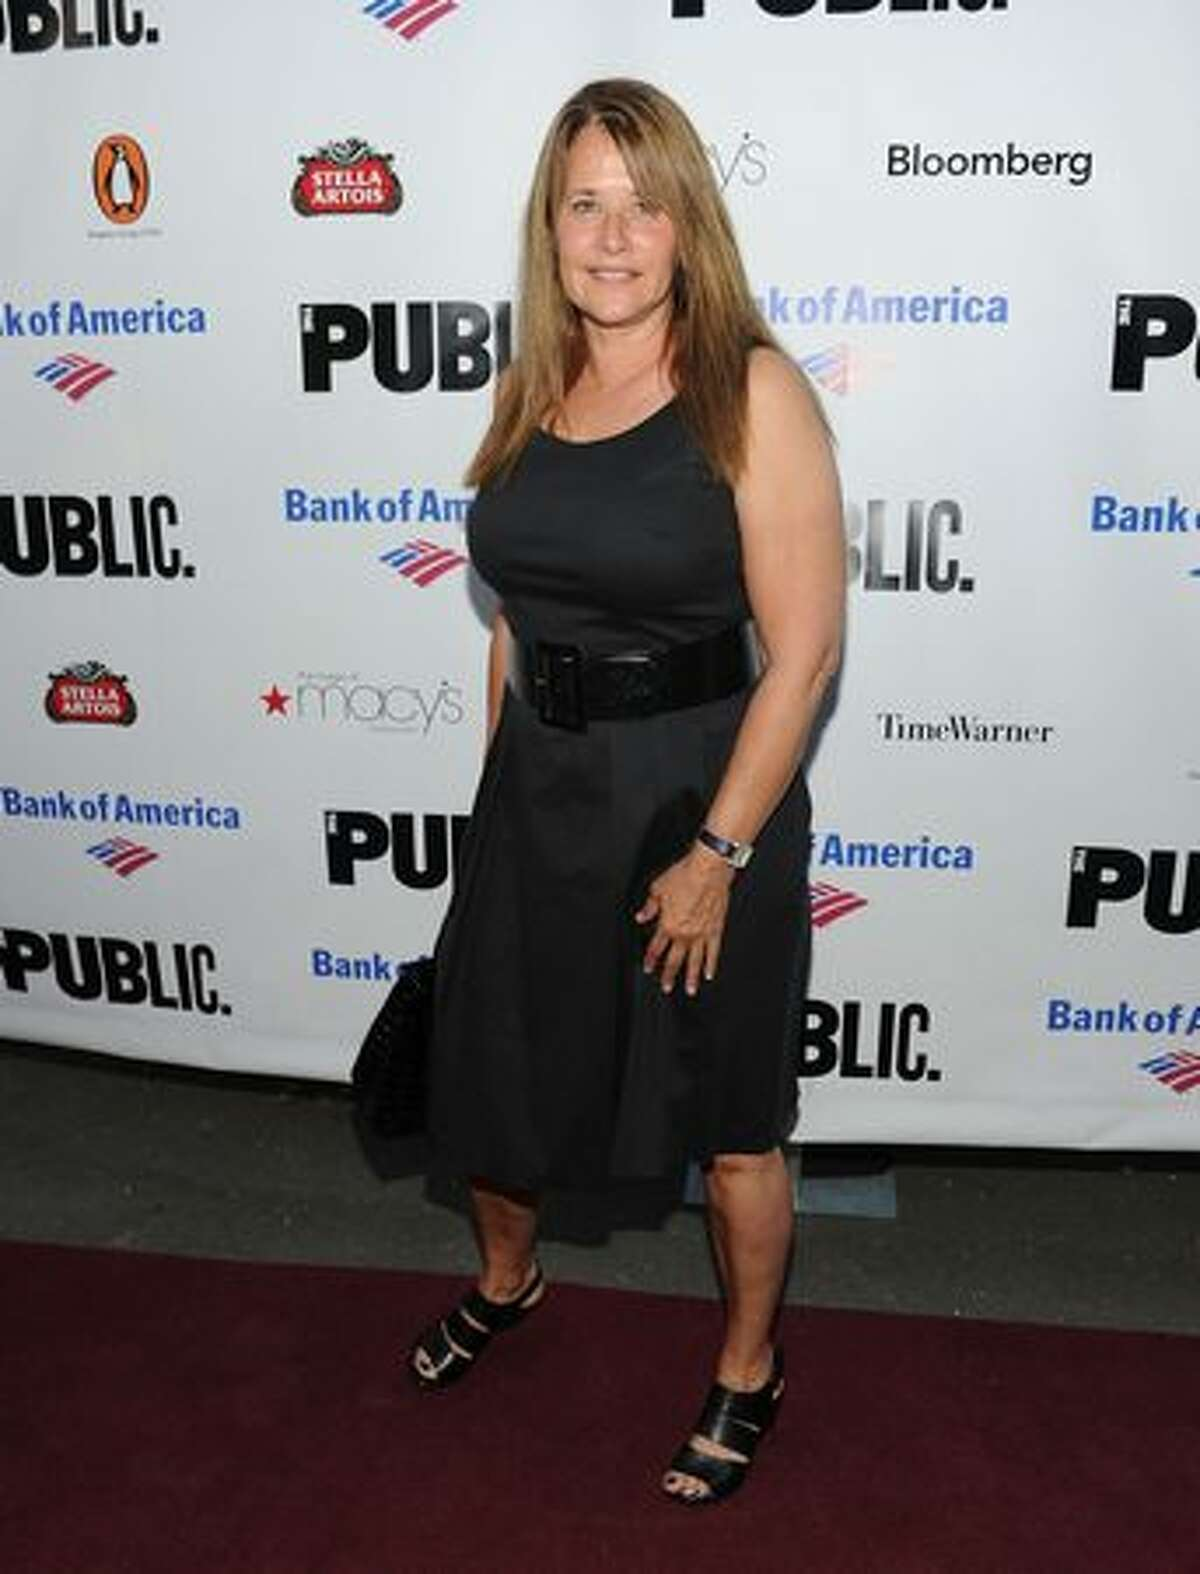 Actress Lorraine Bracco attends the 2010 Public Theater Gala at the Delacorte Theater.